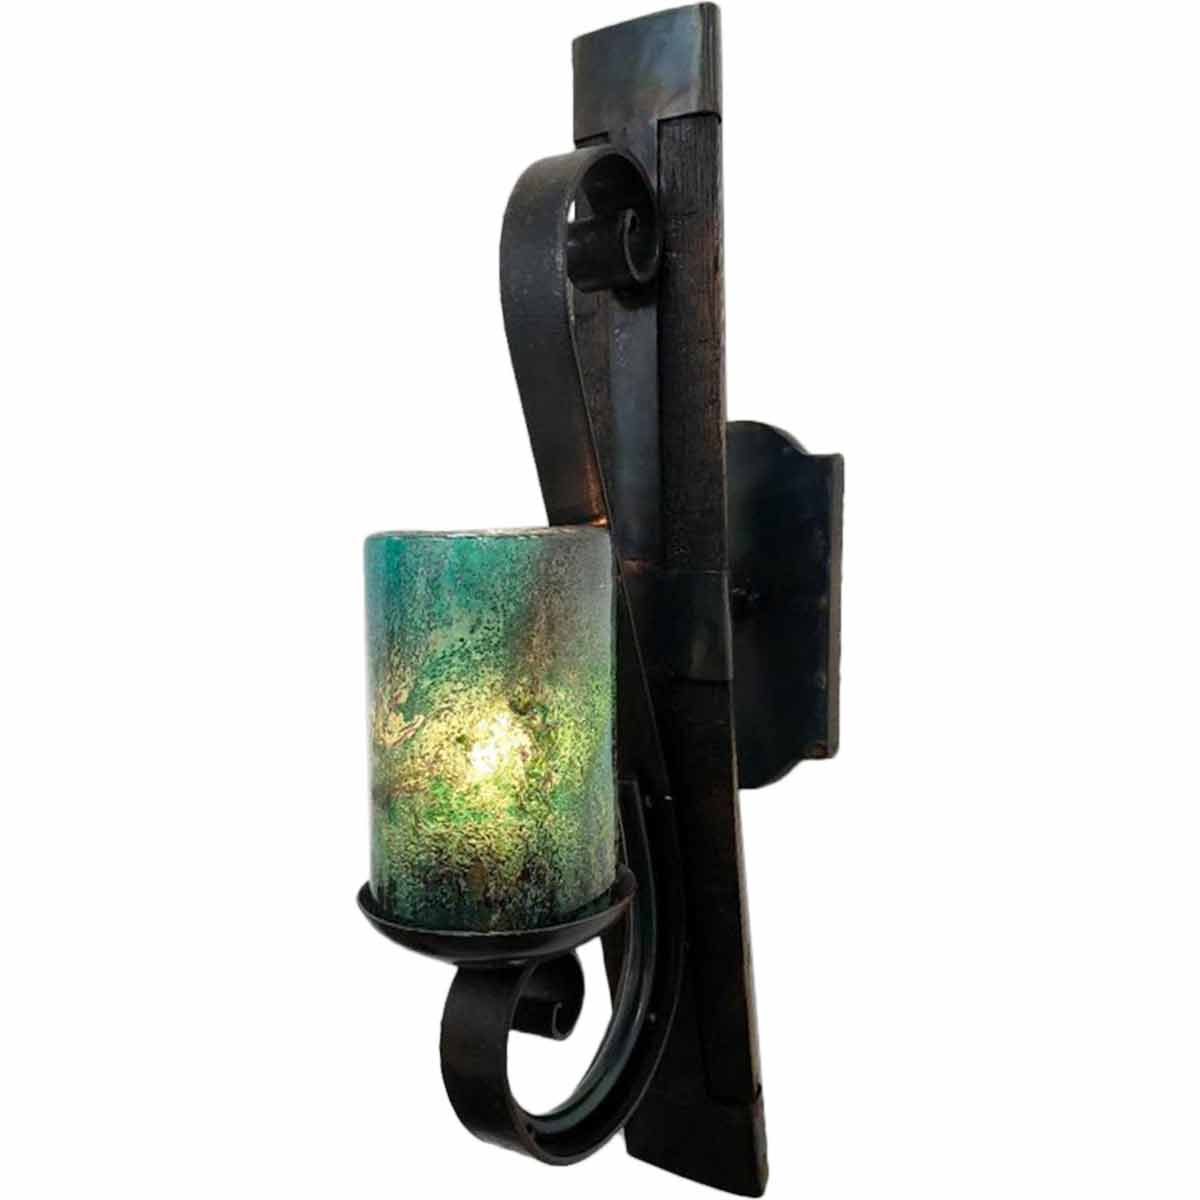 Electric Tequila Stave Wall Sconce with Turquoise Glass